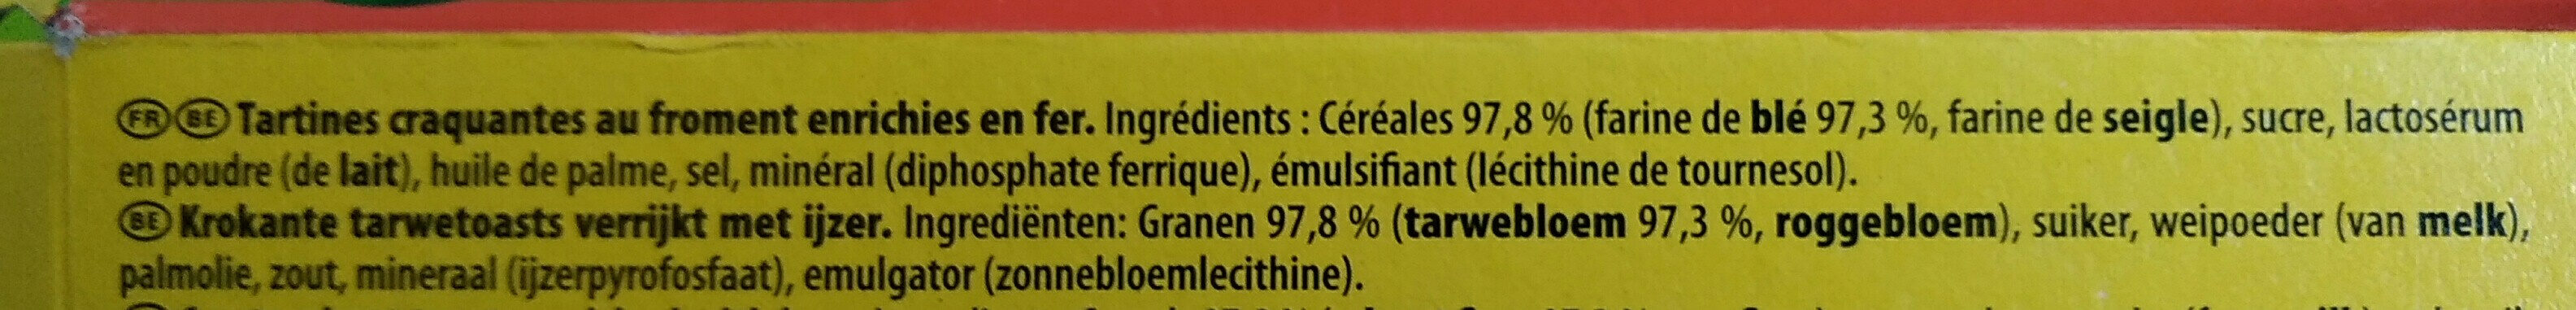 Cracotte - Ingredients